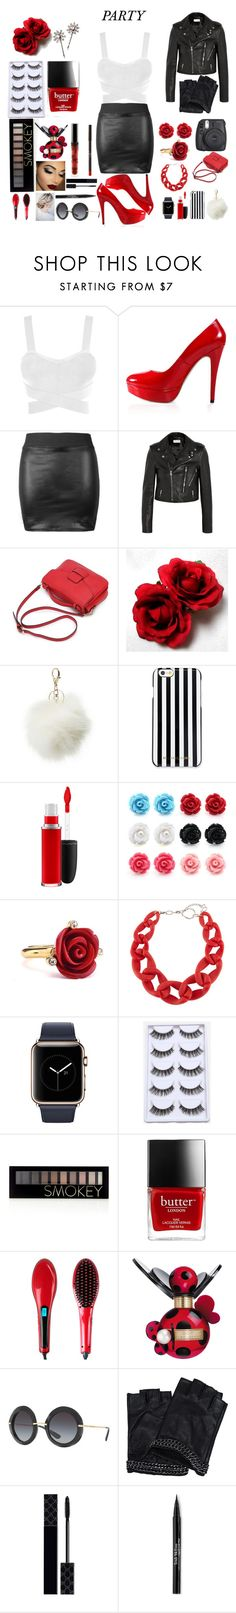 """""""Nightime Party"""" by ale-needam on Polyvore featuring Posh Girl, Yves Saint Laurent, Charlotte Russe, MICHAEL Michael Kors, MAC Cosmetics, Oscar de la Renta, DIANA BROUSSARD, Forever 21, Marc Jacobs and Dolce&Gabbana"""